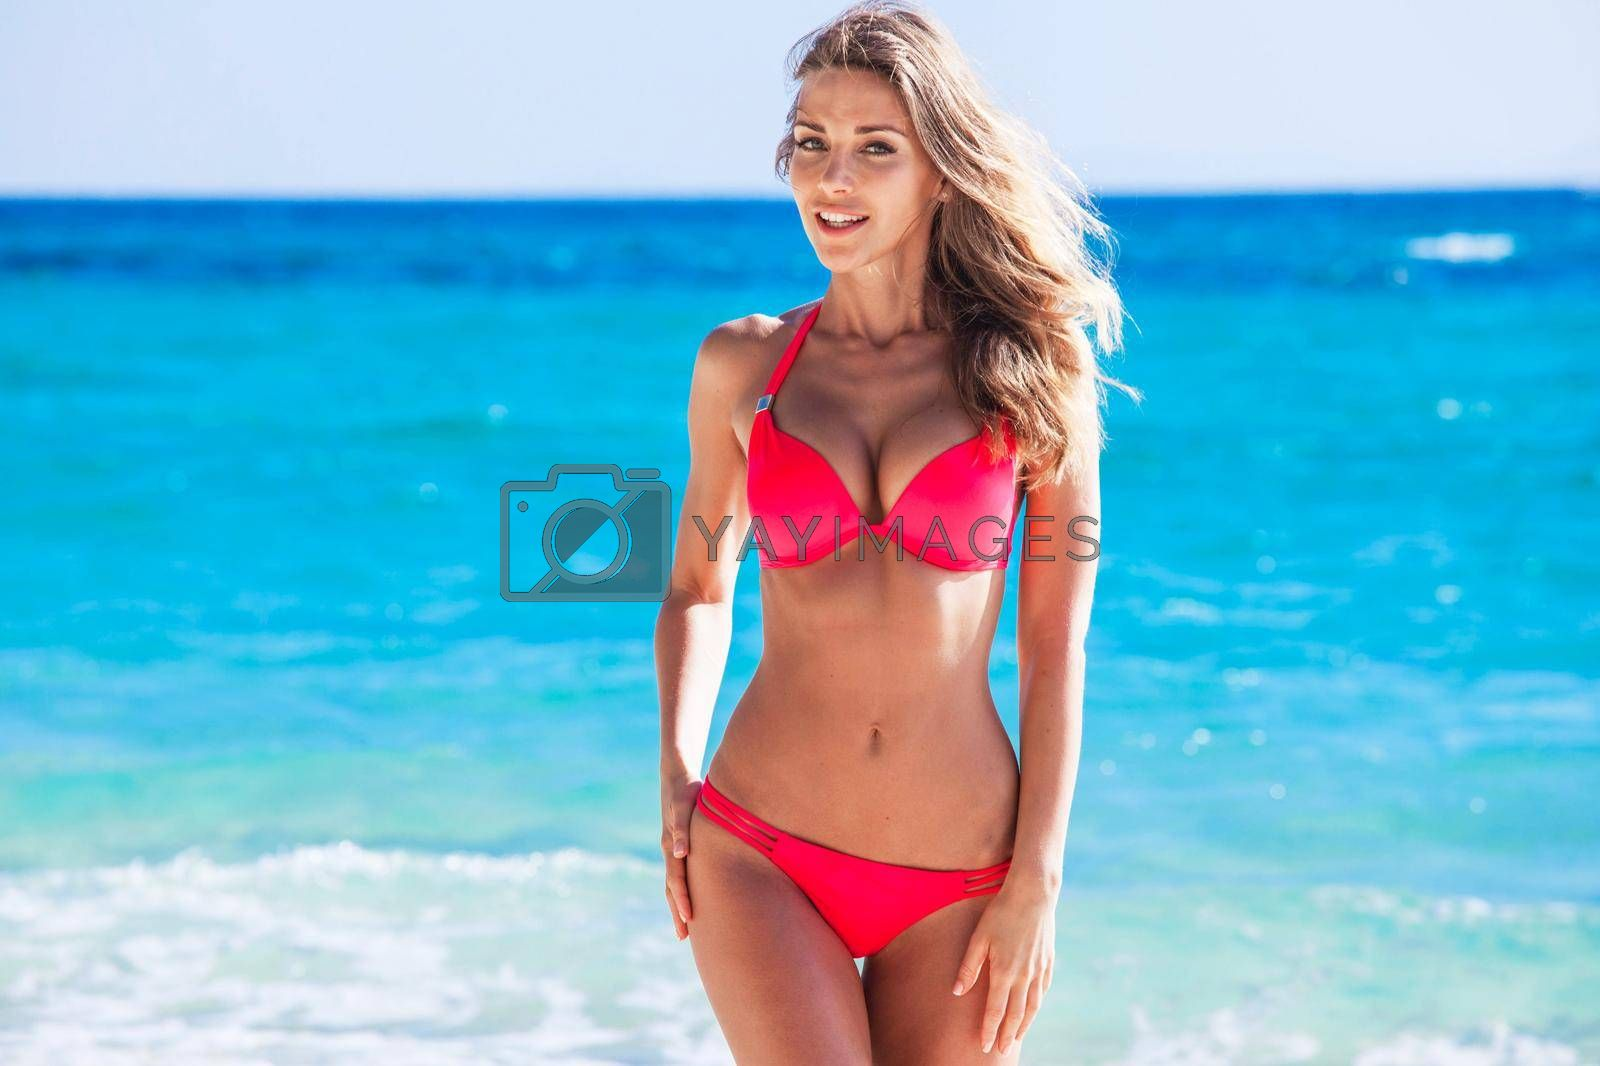 Happy tanned girl in red bikini at seaside, blue sea water in background